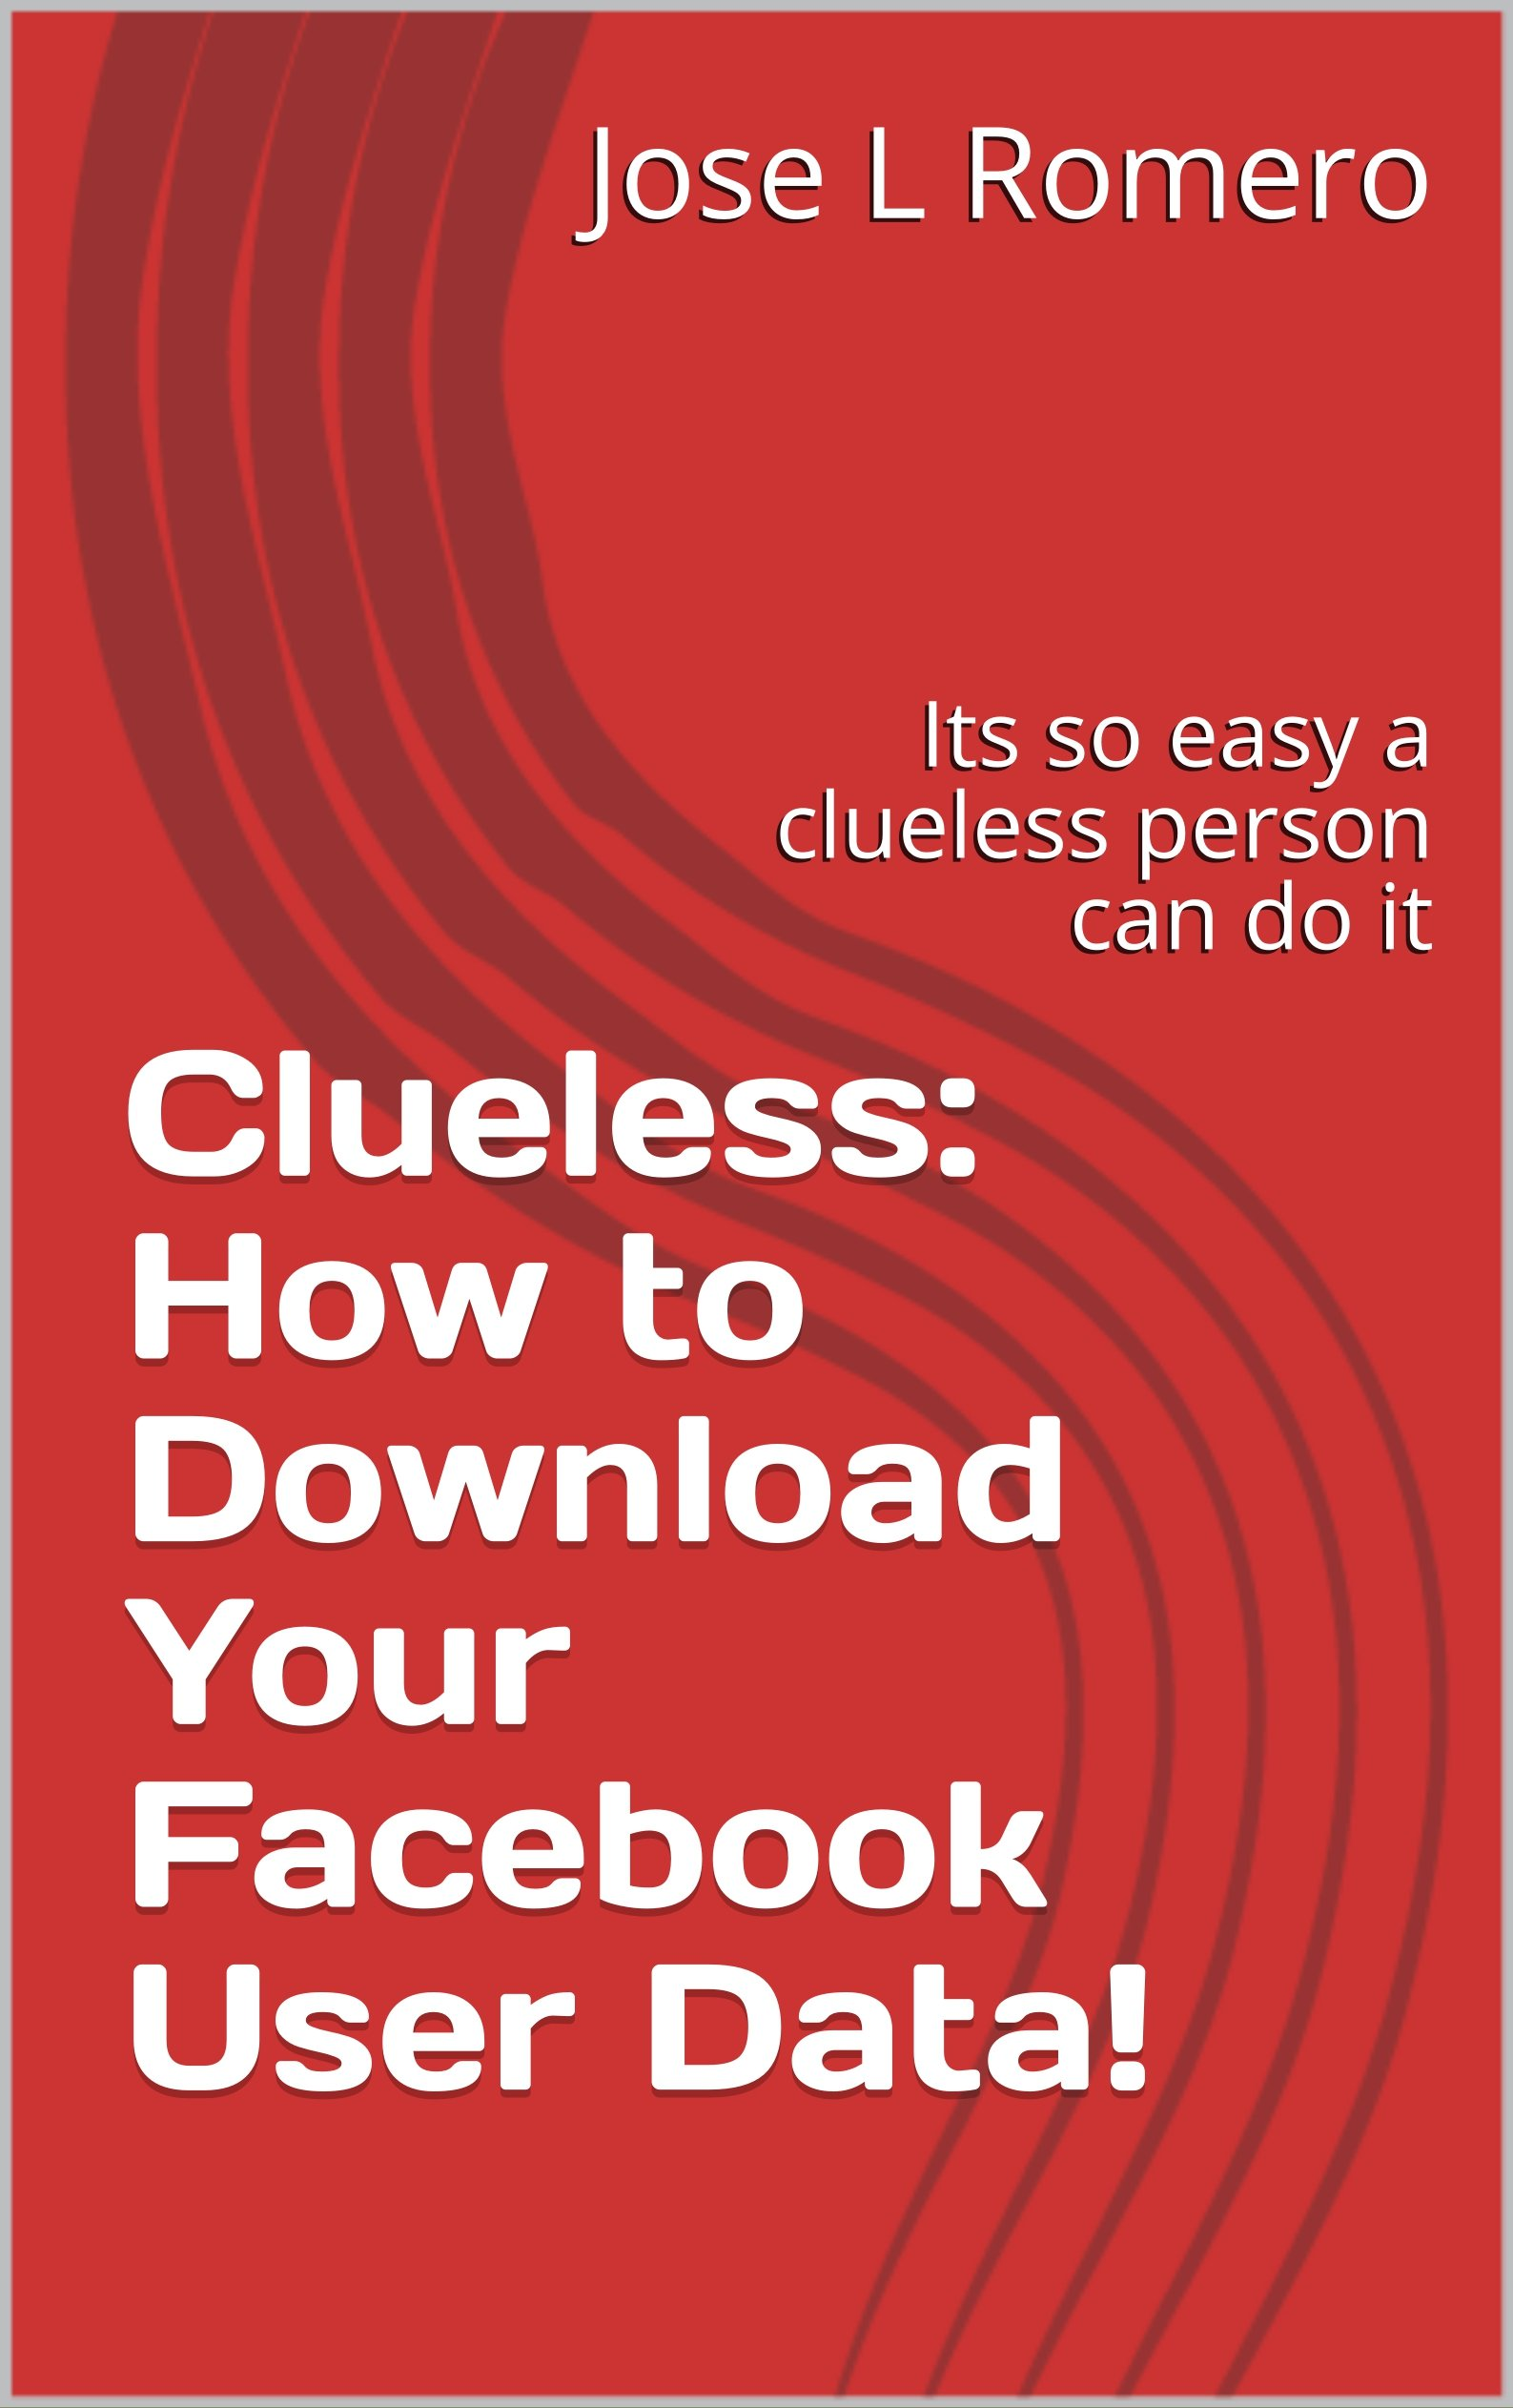 Clueless: How to Download Your Facebook User Data!: Its so easy a clueless person can do it